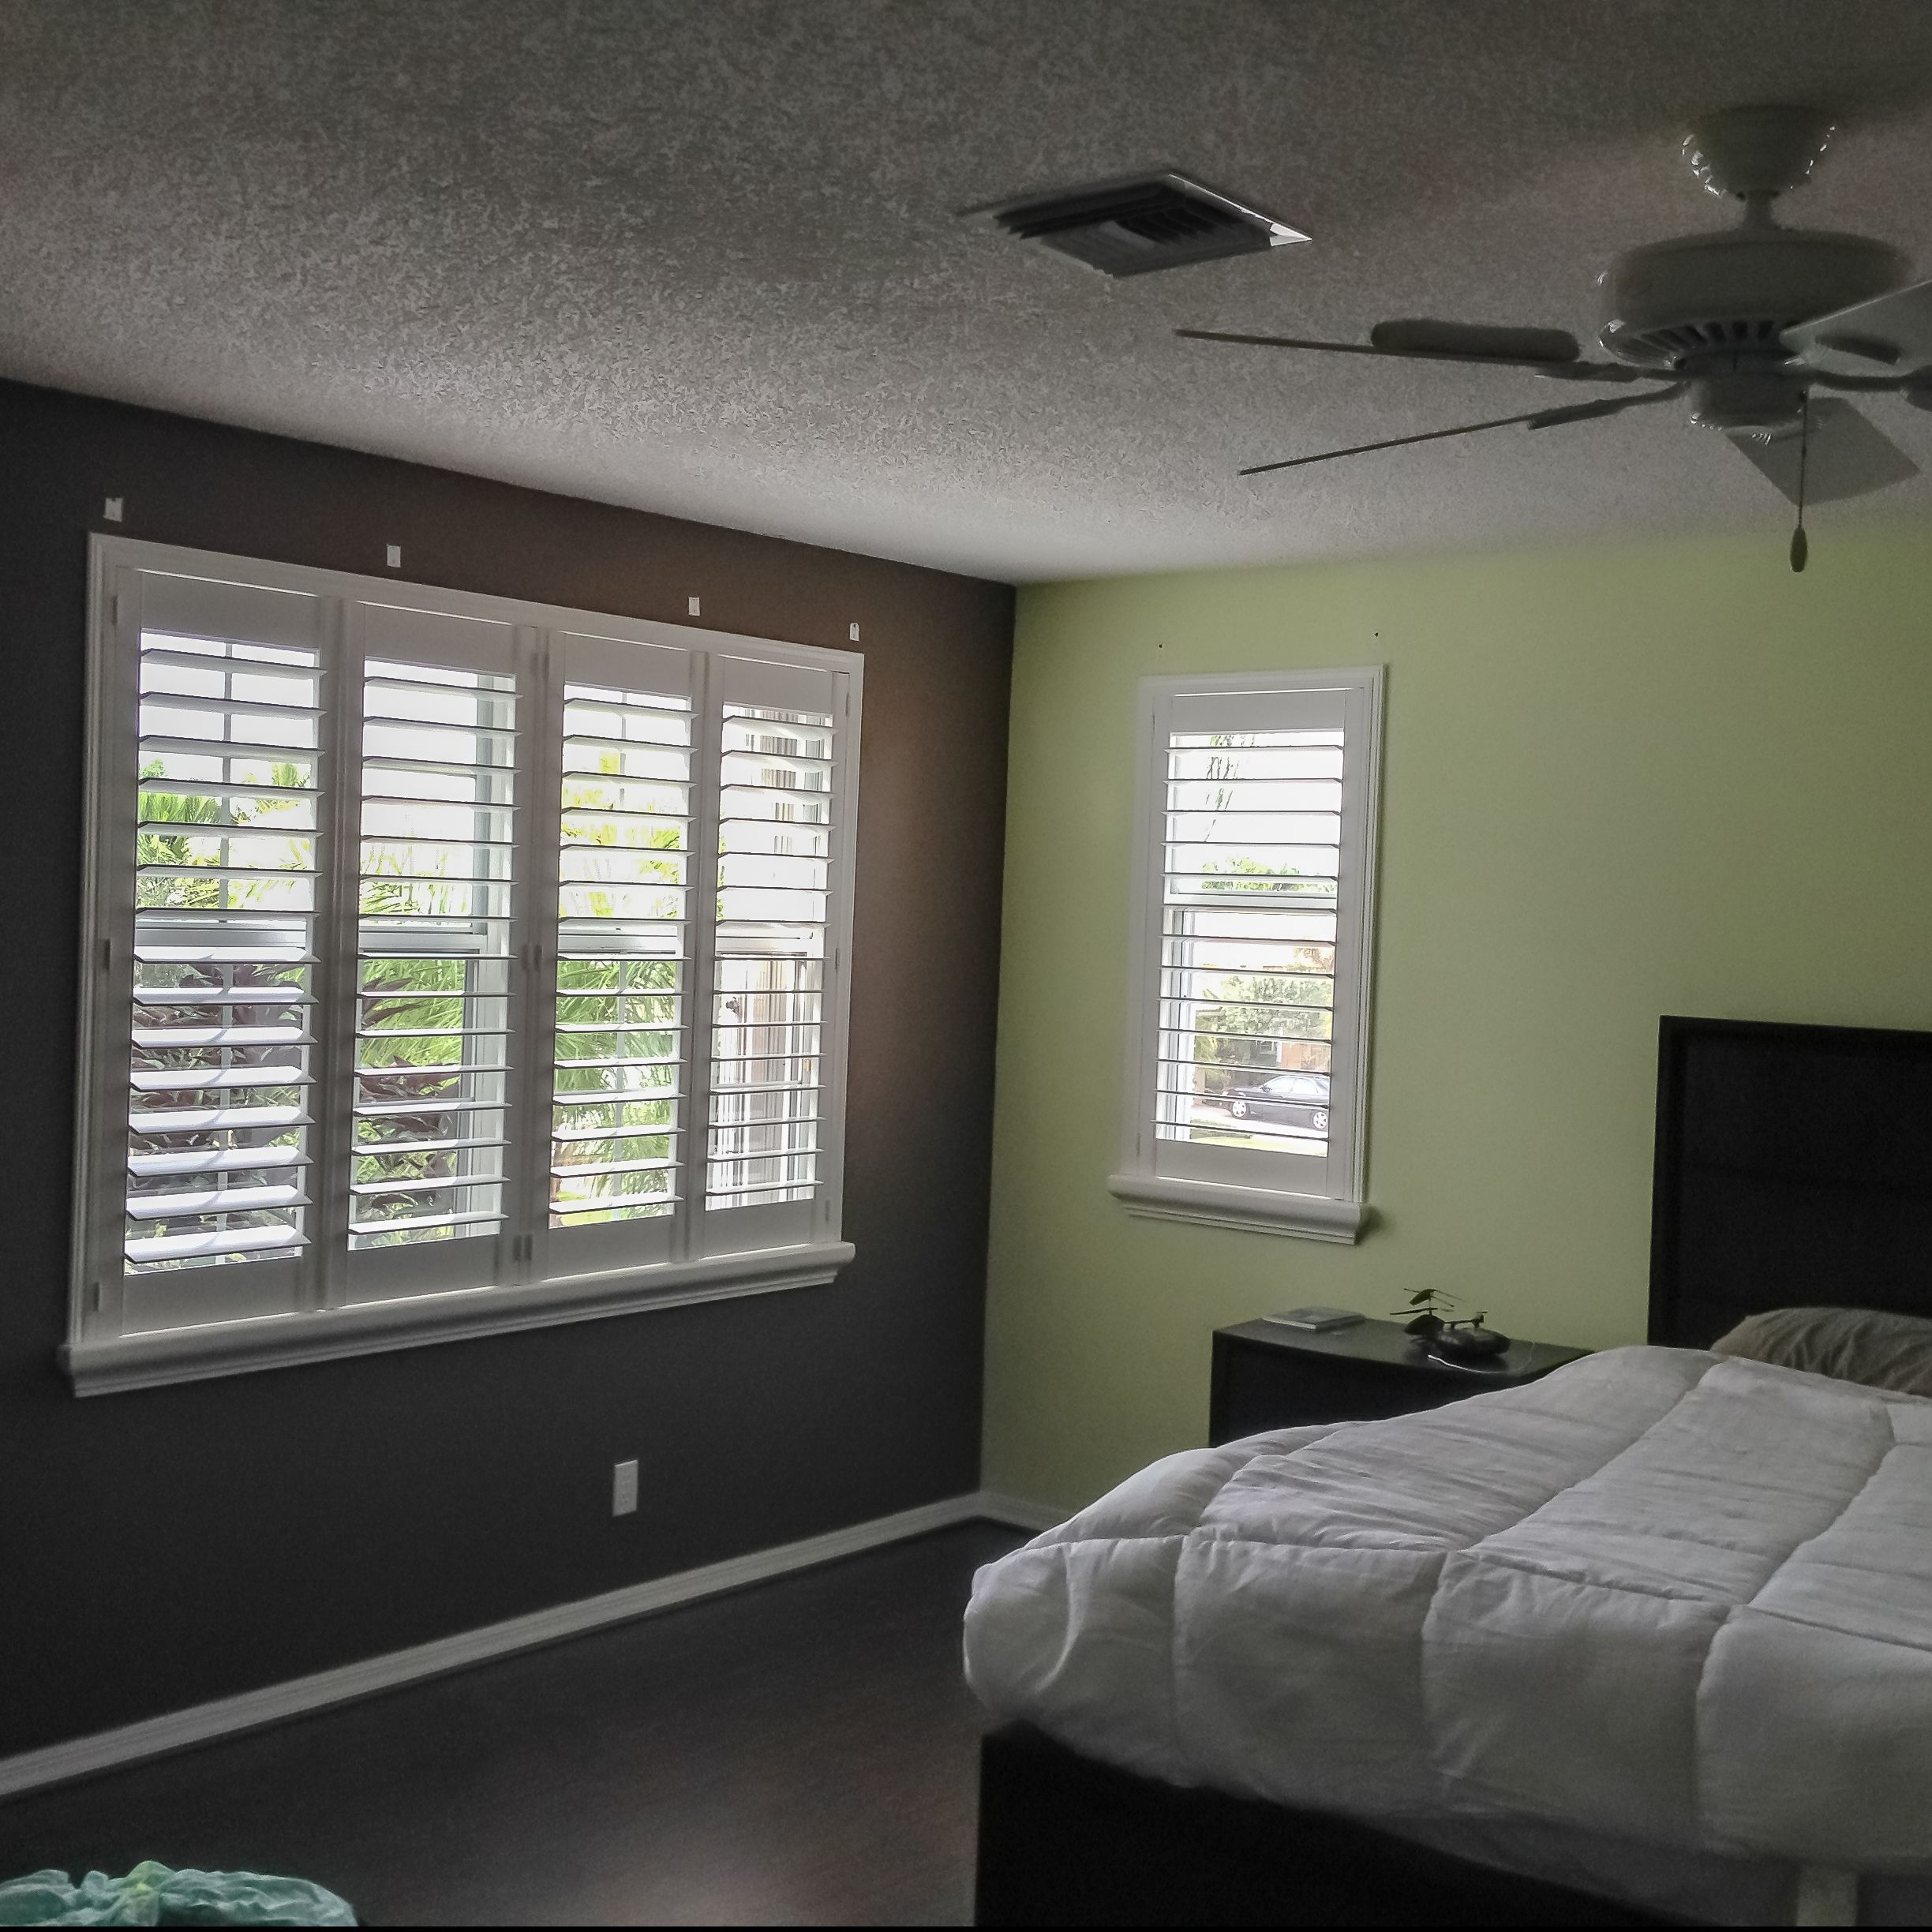 Plantation Shutters are up in this residence.  #blindsshadesandshutters #myblindstoday #windowtreatment #miami #homedecor #homedecormiami #interiordesign #condoliving #luxury #luxuryliving  #miamiliving #home #light #miamicondos #miamibest